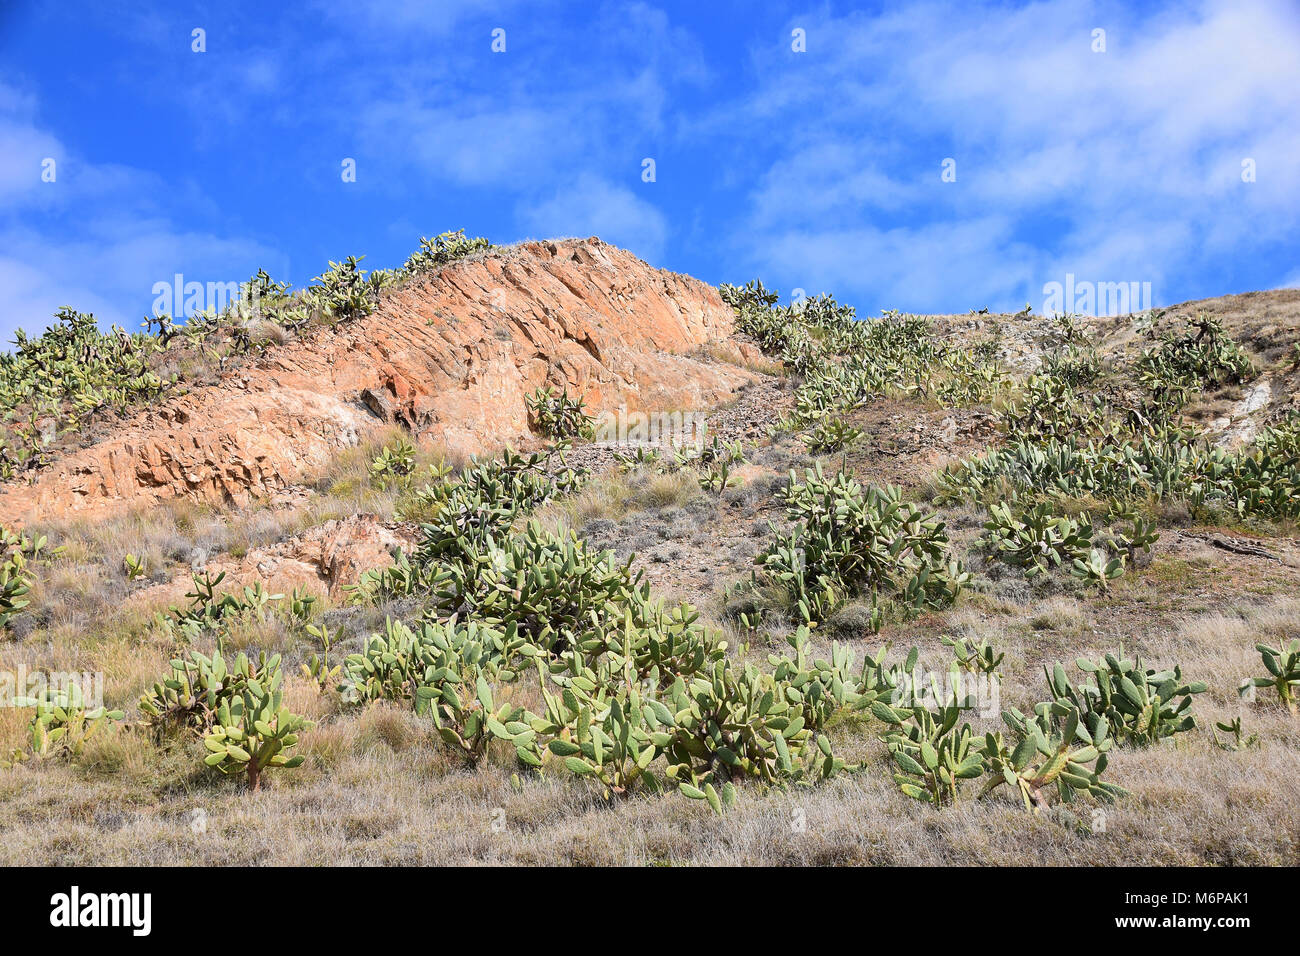 Geological landscape of rock and cactus to the east of Vila Baleira, Porto Santo, Portugal - Stock Image